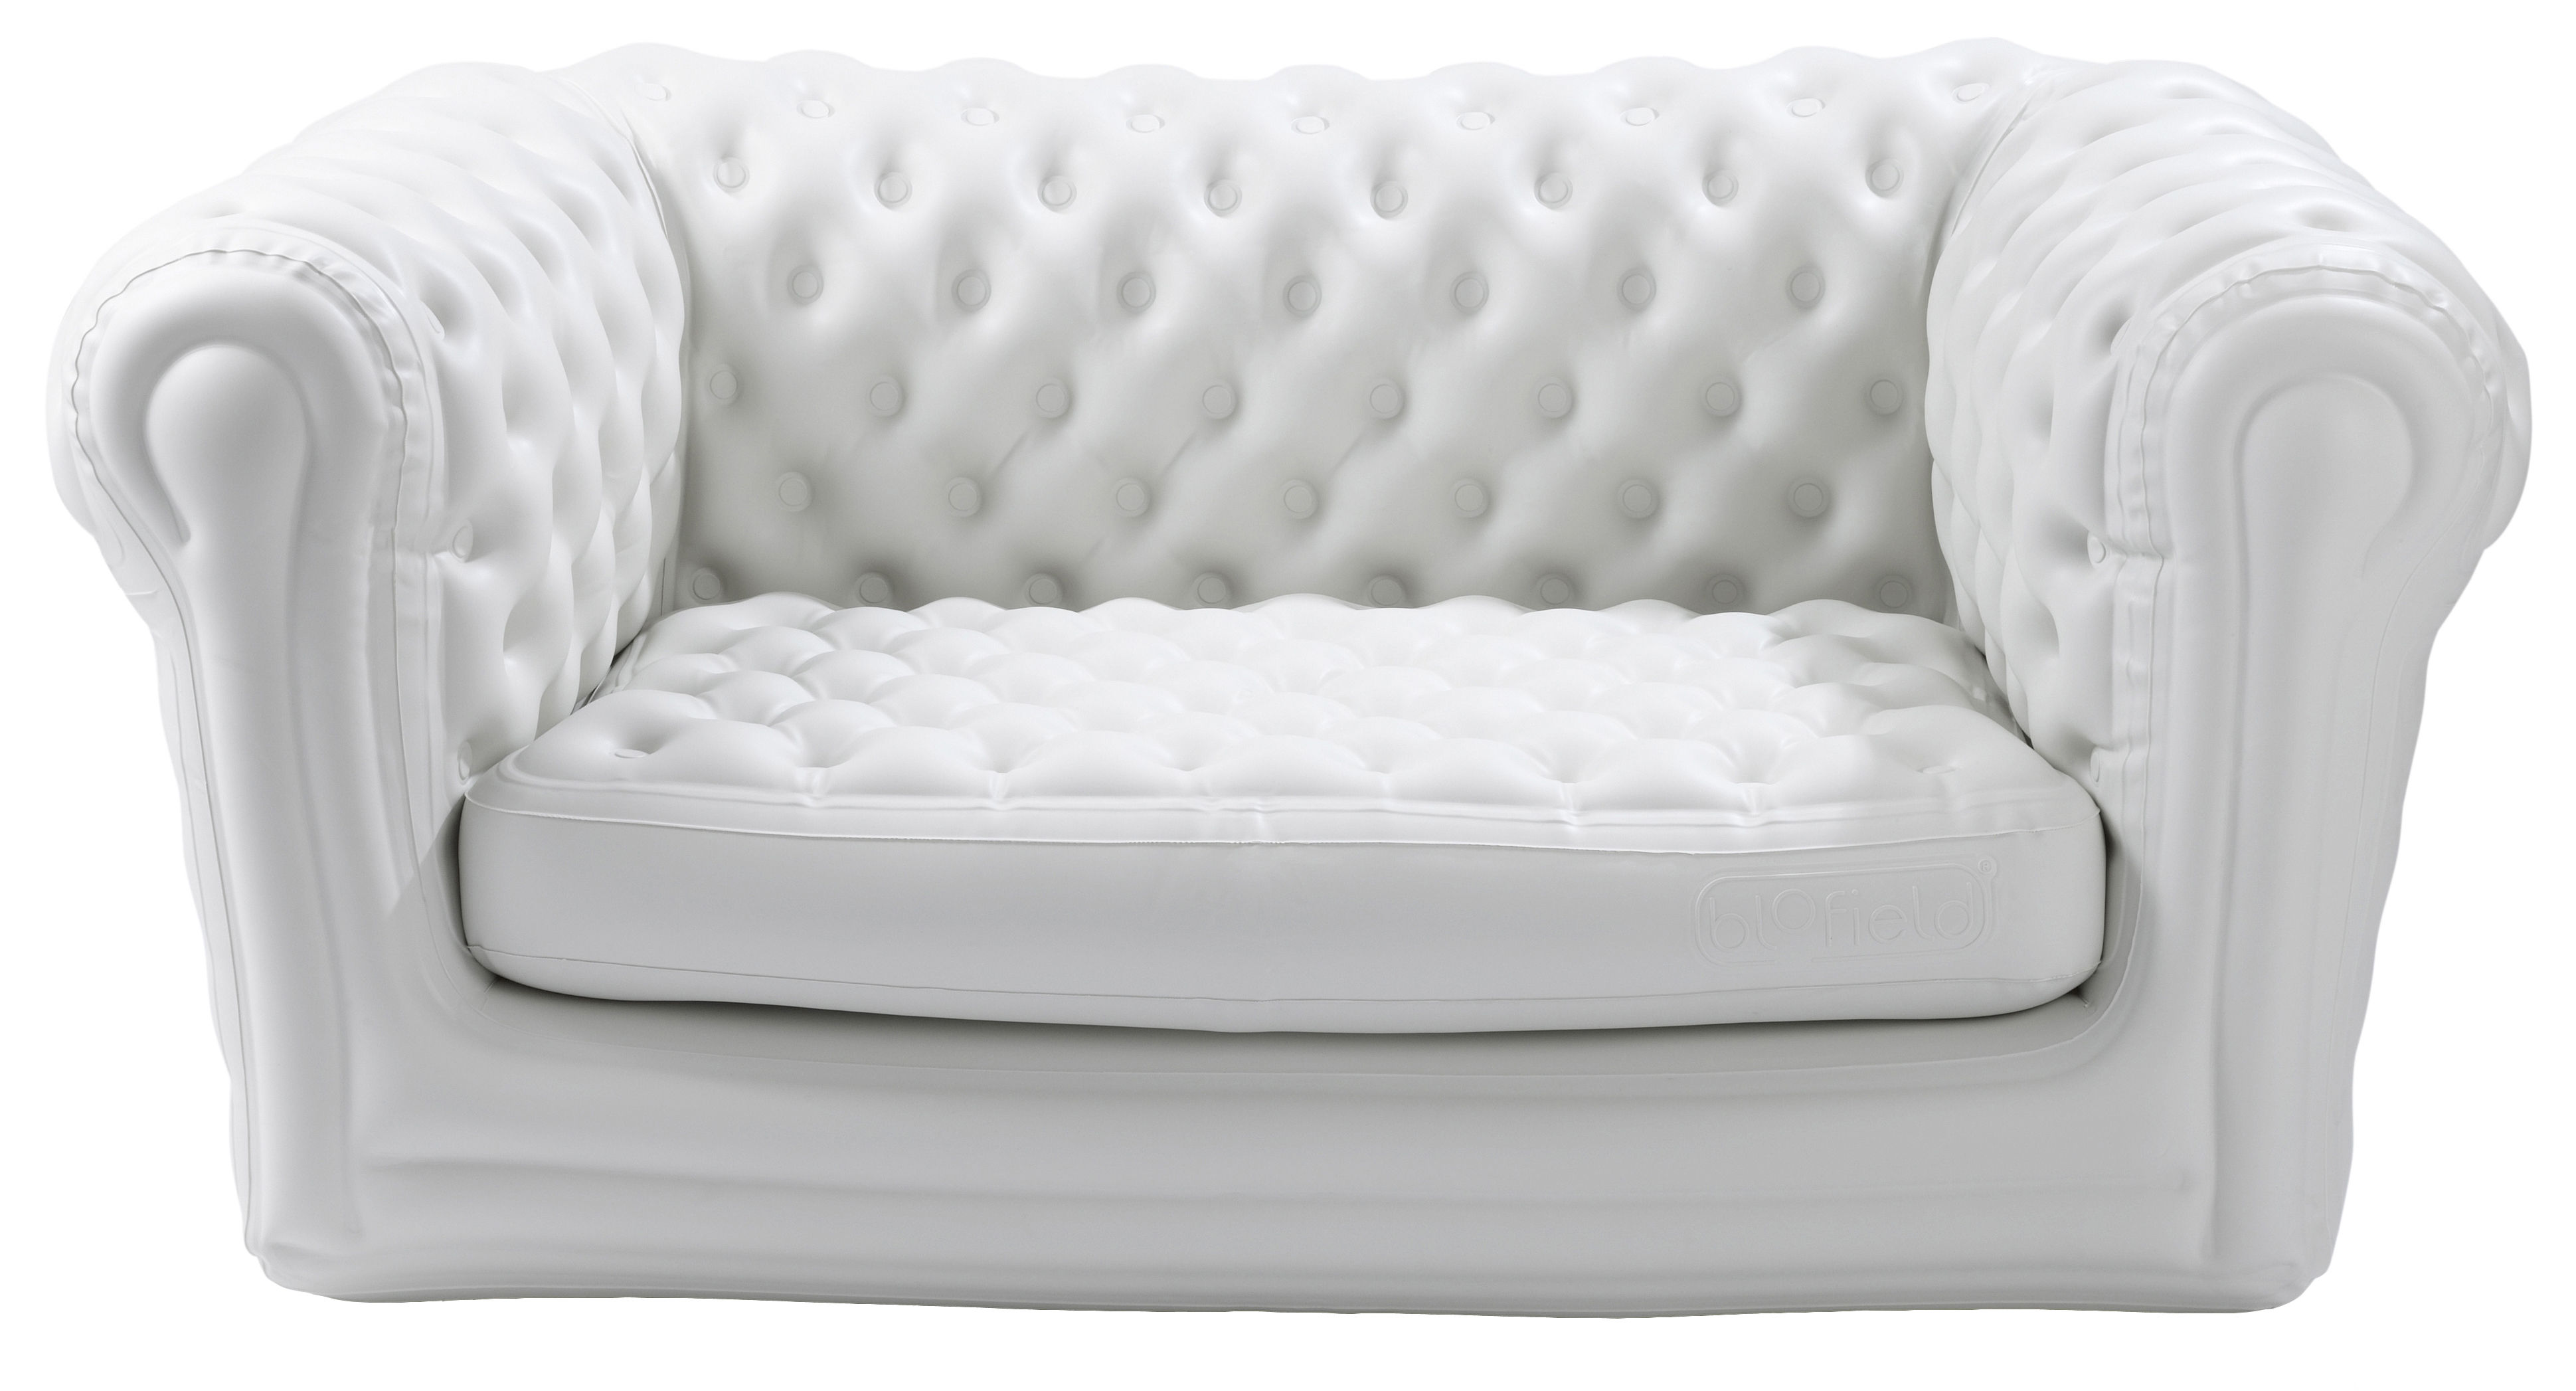 Furniture - Sofas - Big Blo 2 Straight sofa - Inflatable- 2 seats by Blofield - White - Nylon, PVC